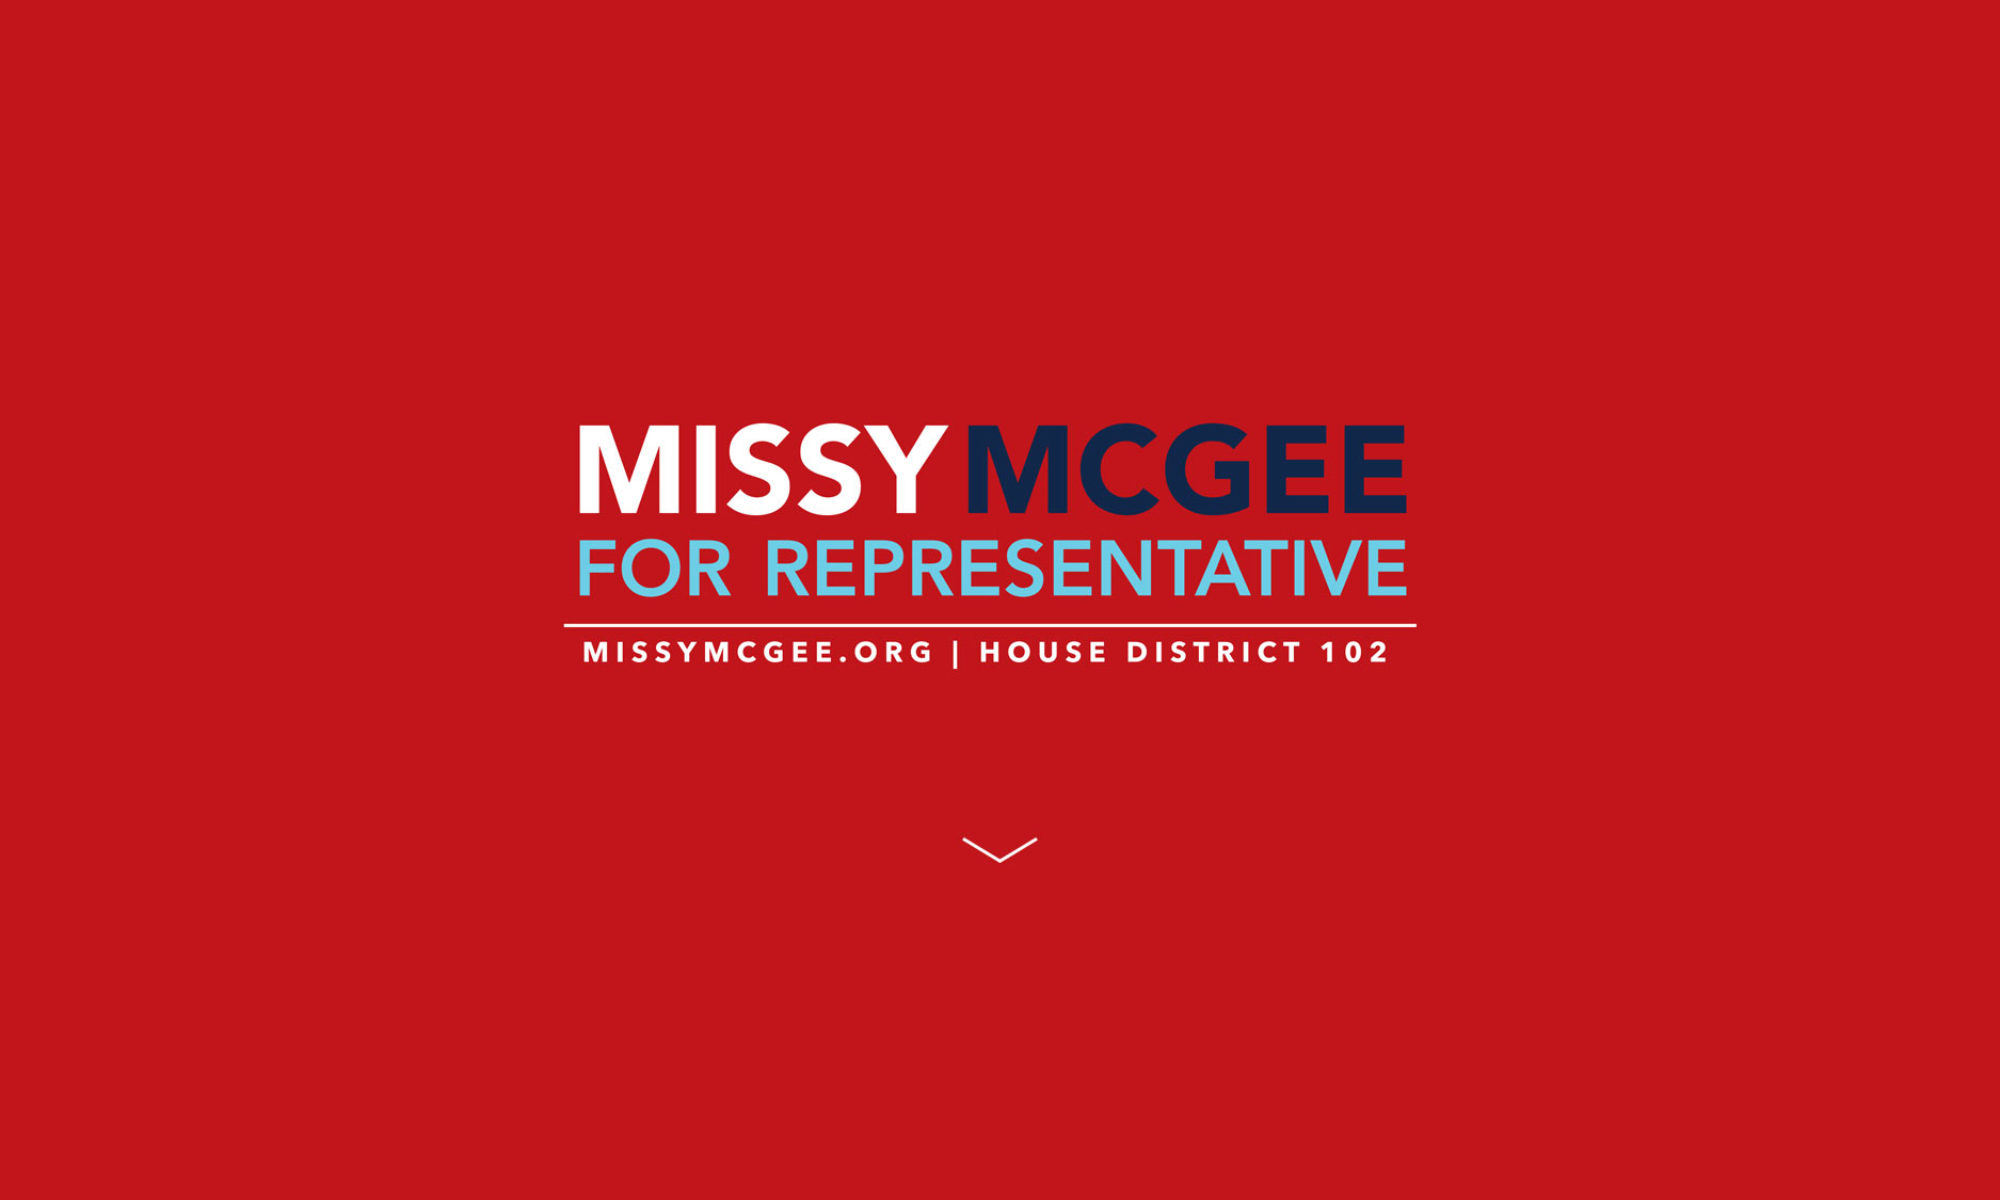 missymcgee.org